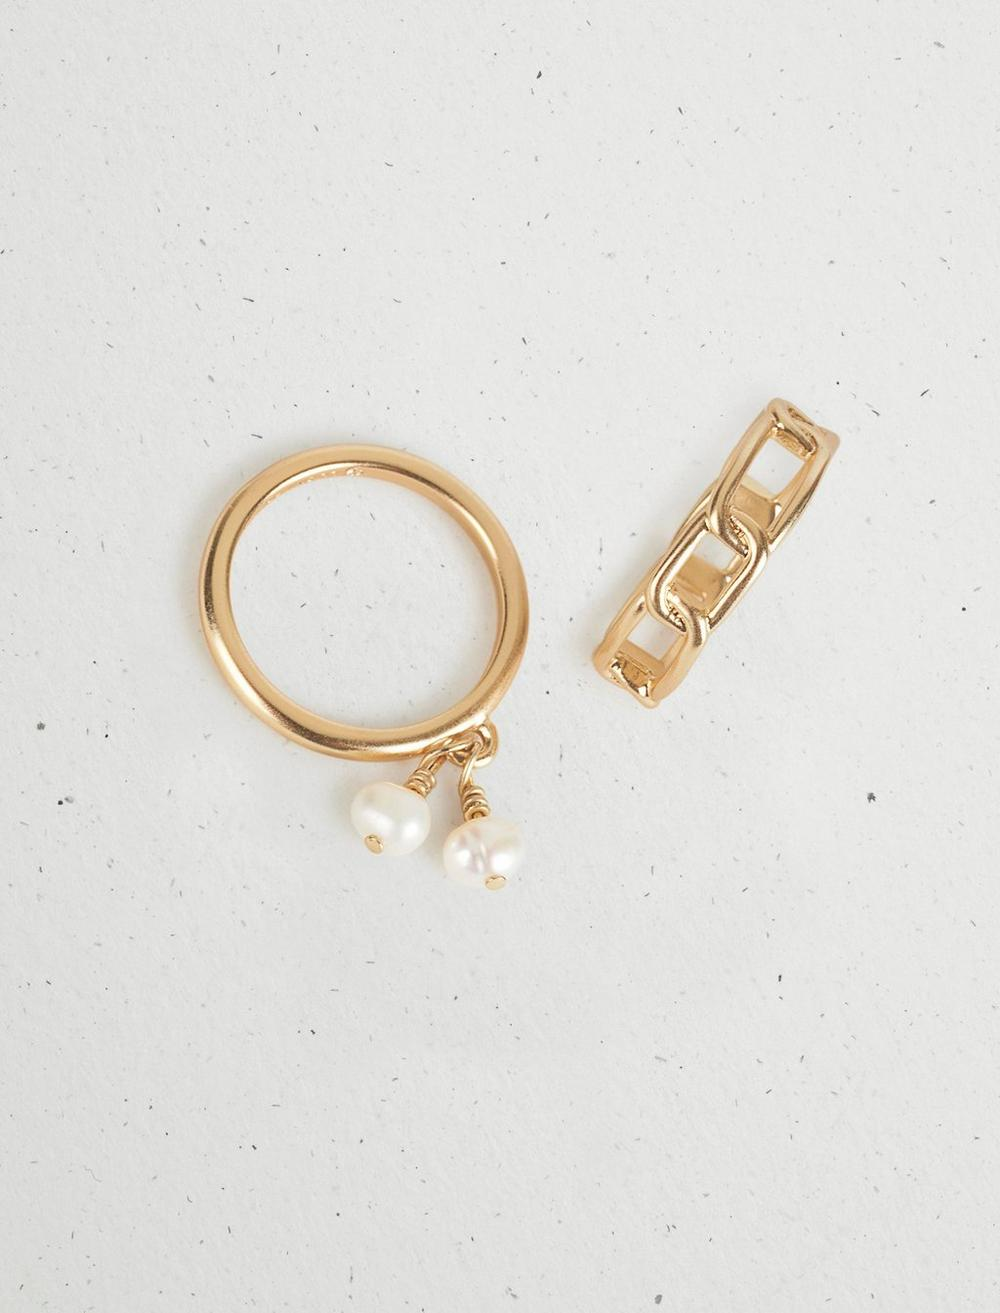 PEARL CHAIN RING STACK, image 2